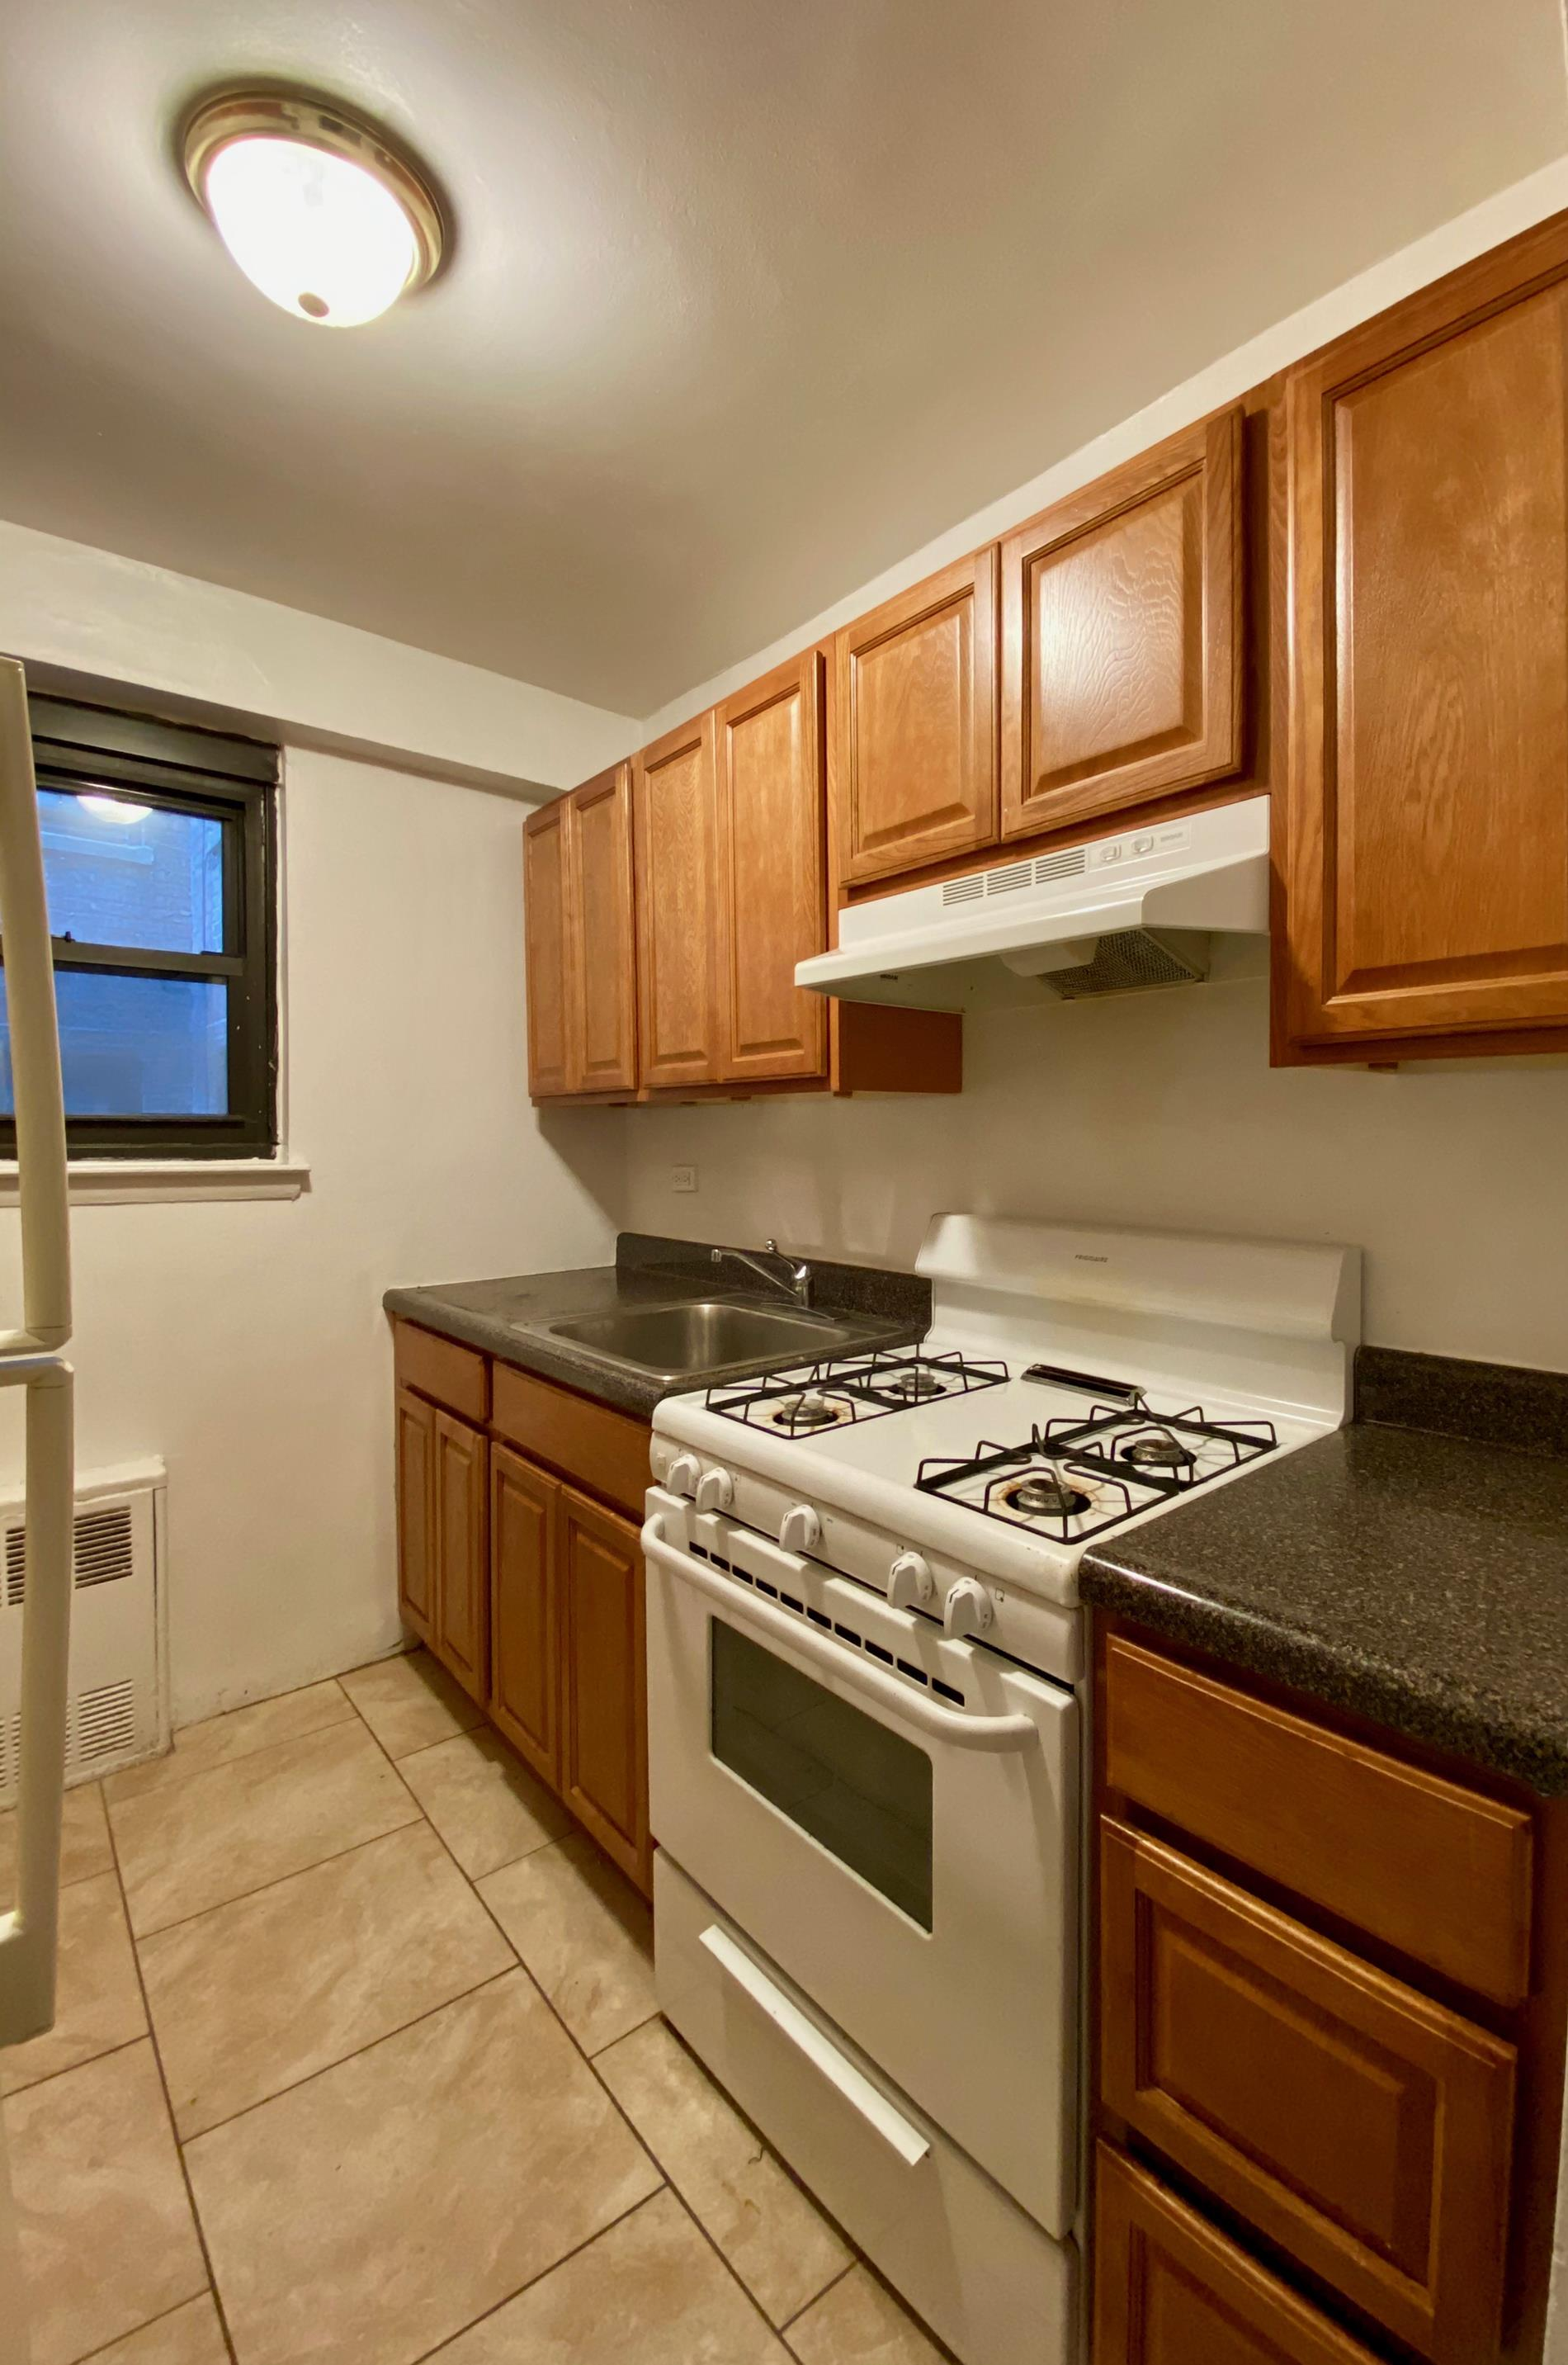 Apartment for sale at 579 West 215th Street, Apt 4-B